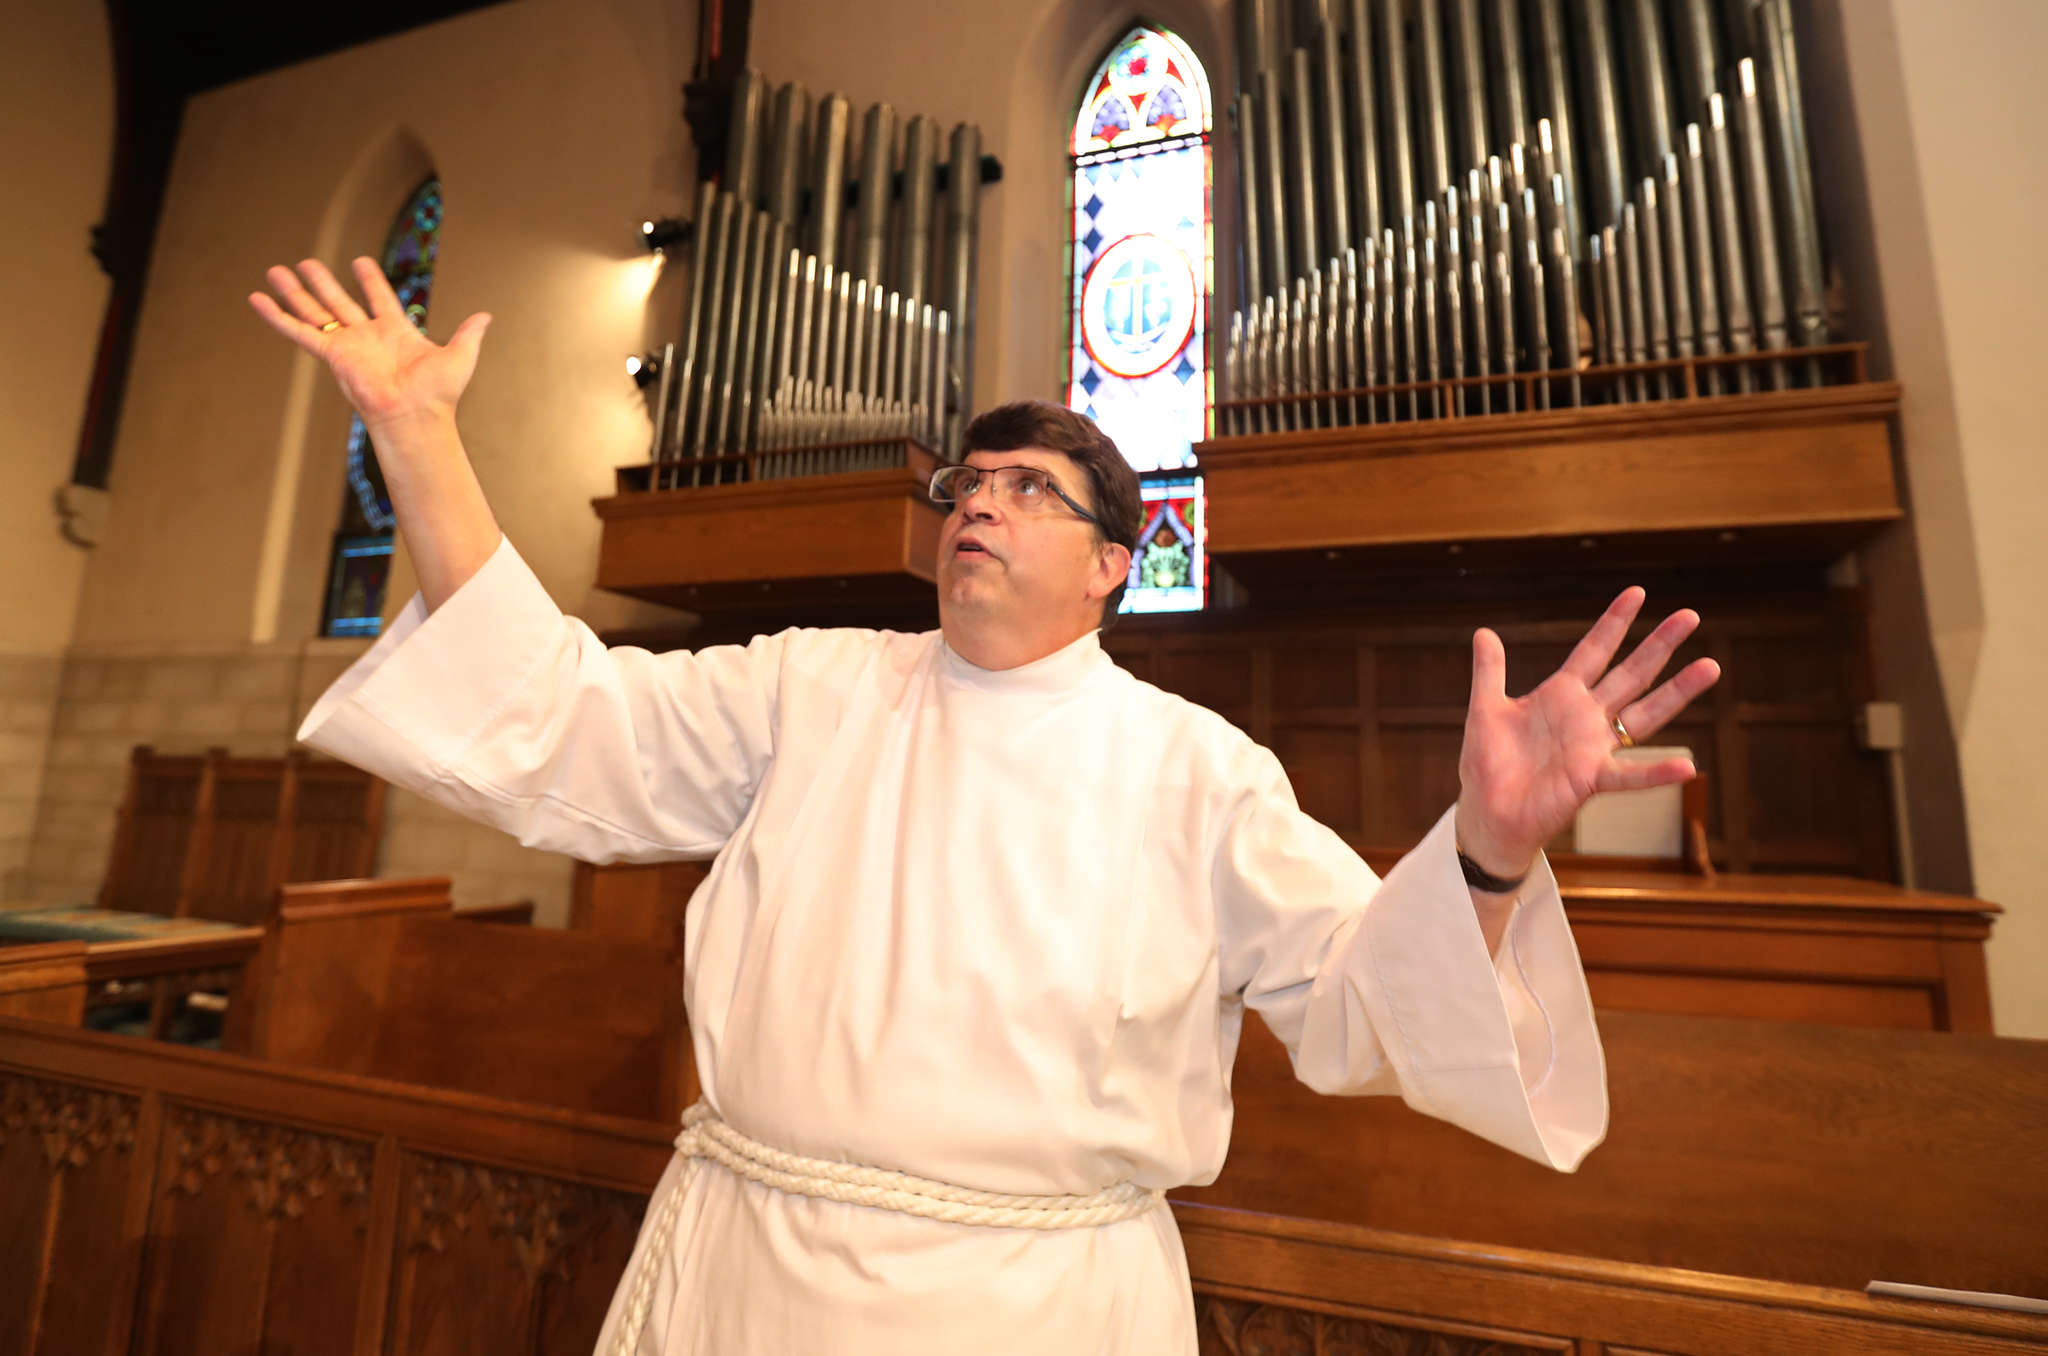 The Very Rev. Richard C. Wrede at Christ Church in Riverton, which hopes to have its organ playing again next spring.